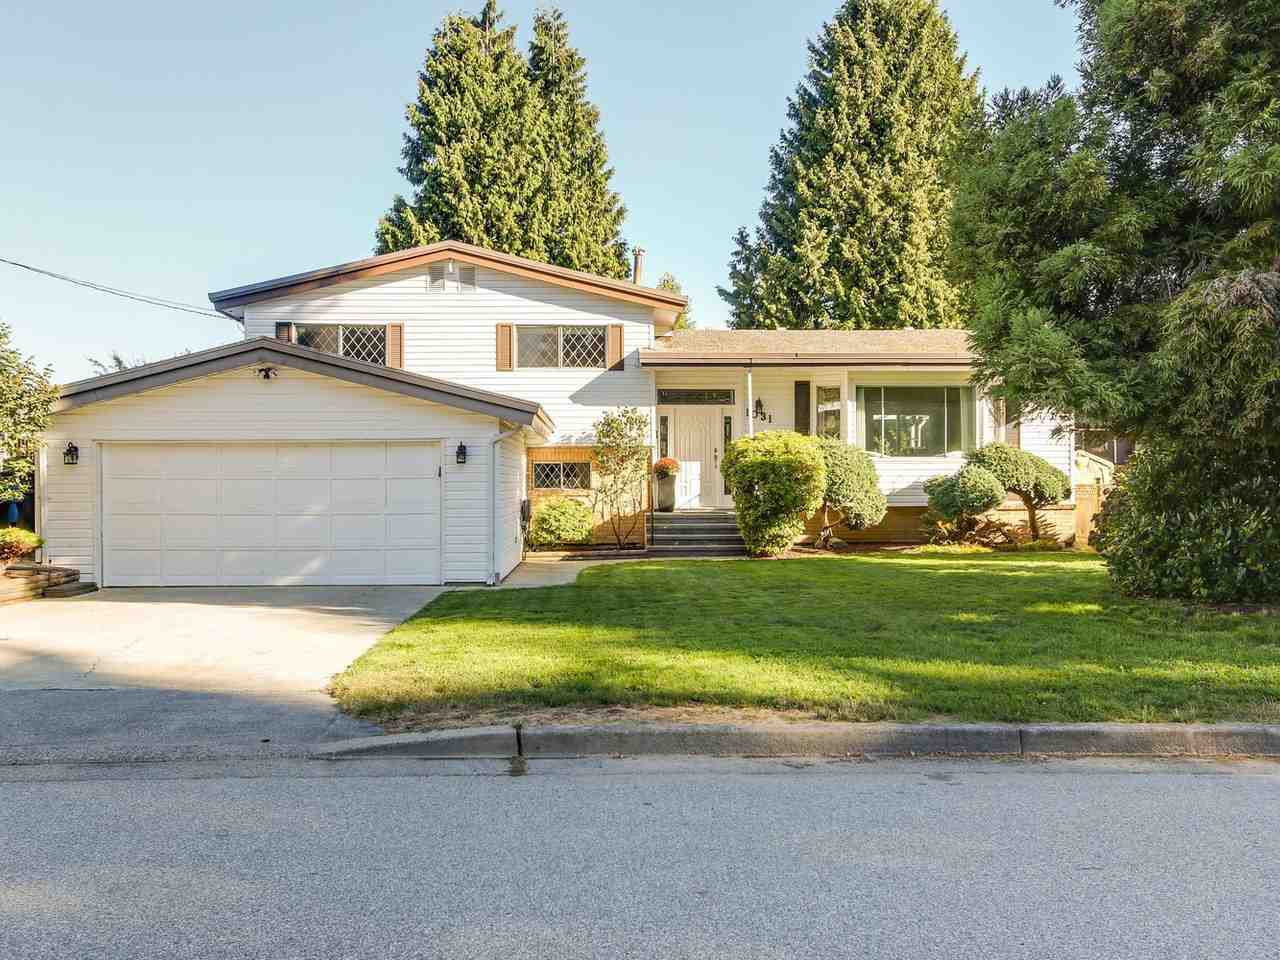 Main Photo: 1031 HIBBARD Avenue in Coquitlam: Harbour Chines House for sale : MLS®# R2204817